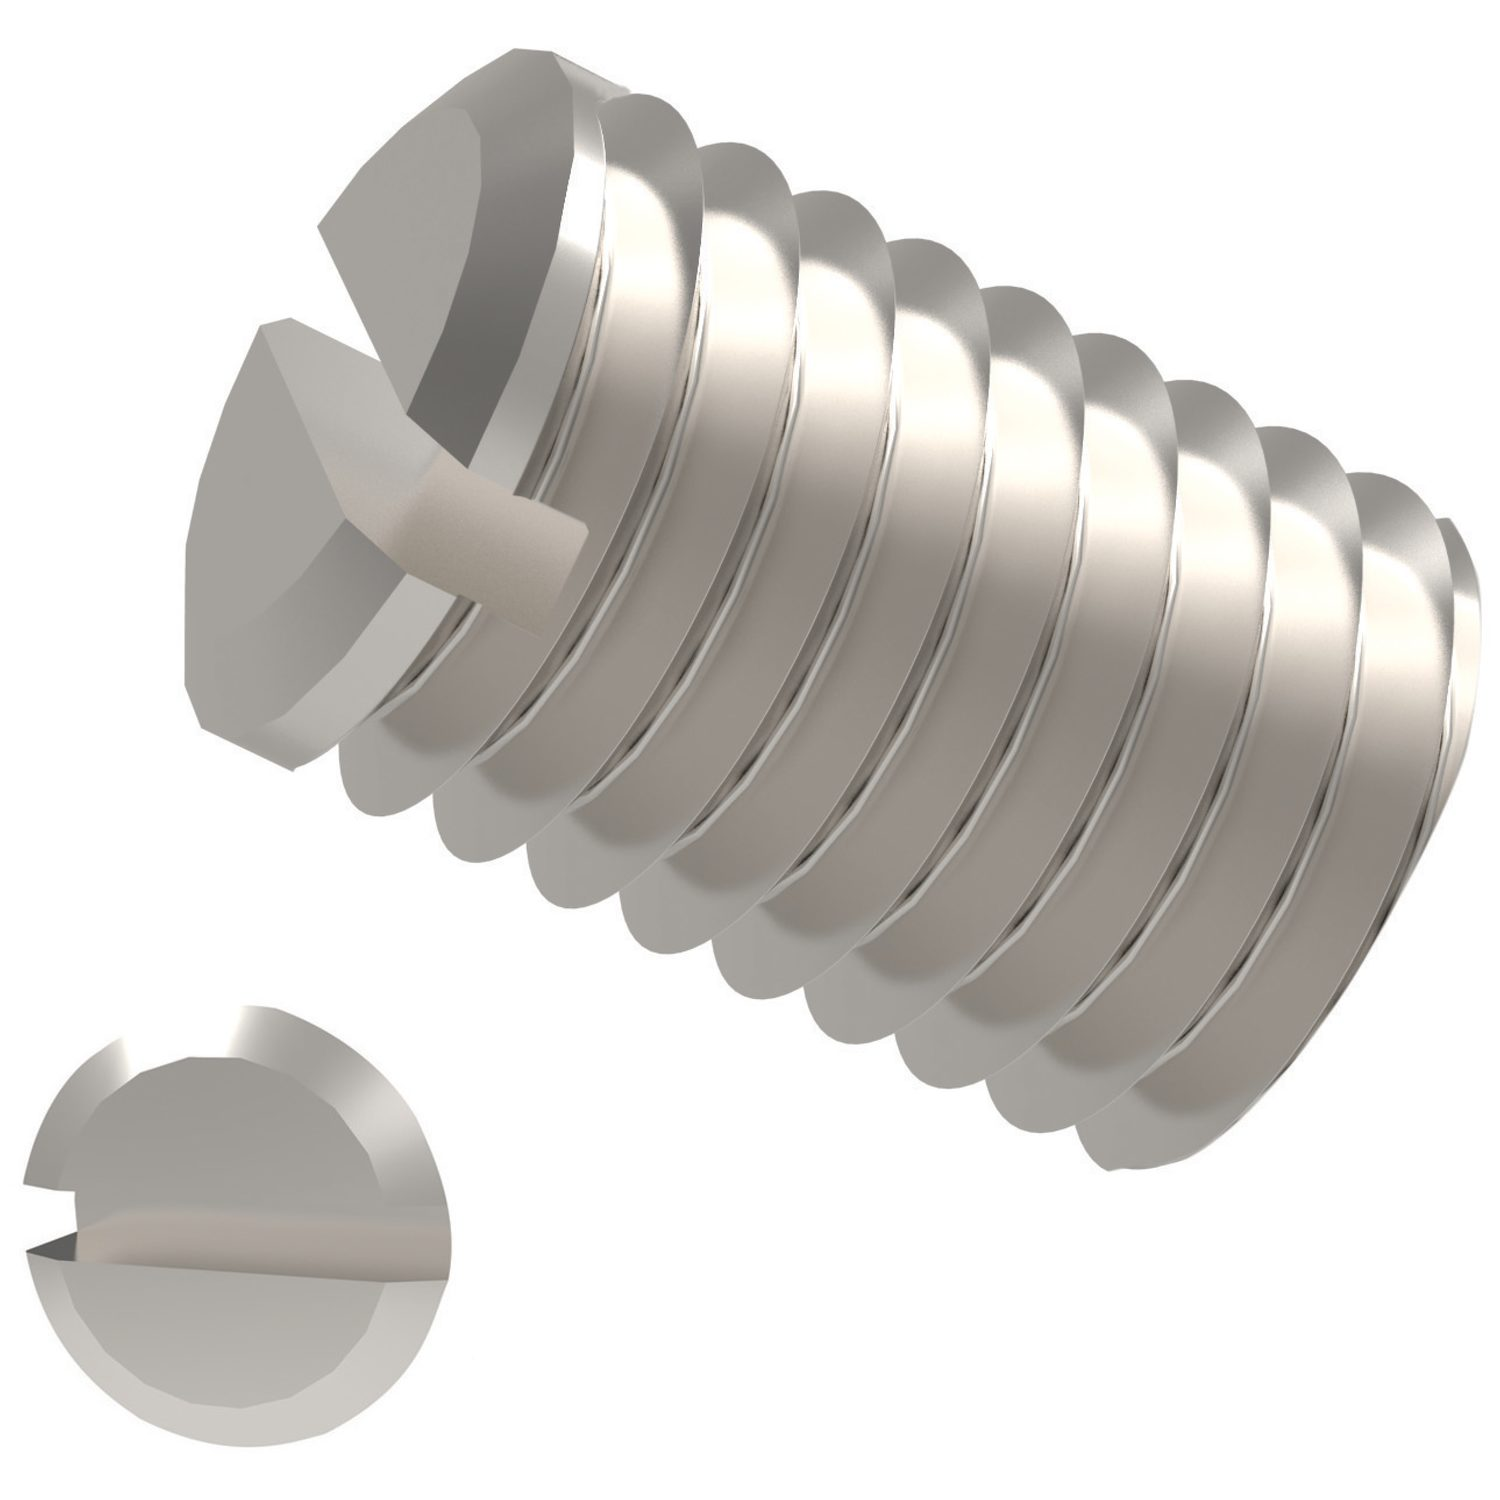 Slotted Set Screws Flat Point A2 Stainless Steel. To DIN 551, flat point.